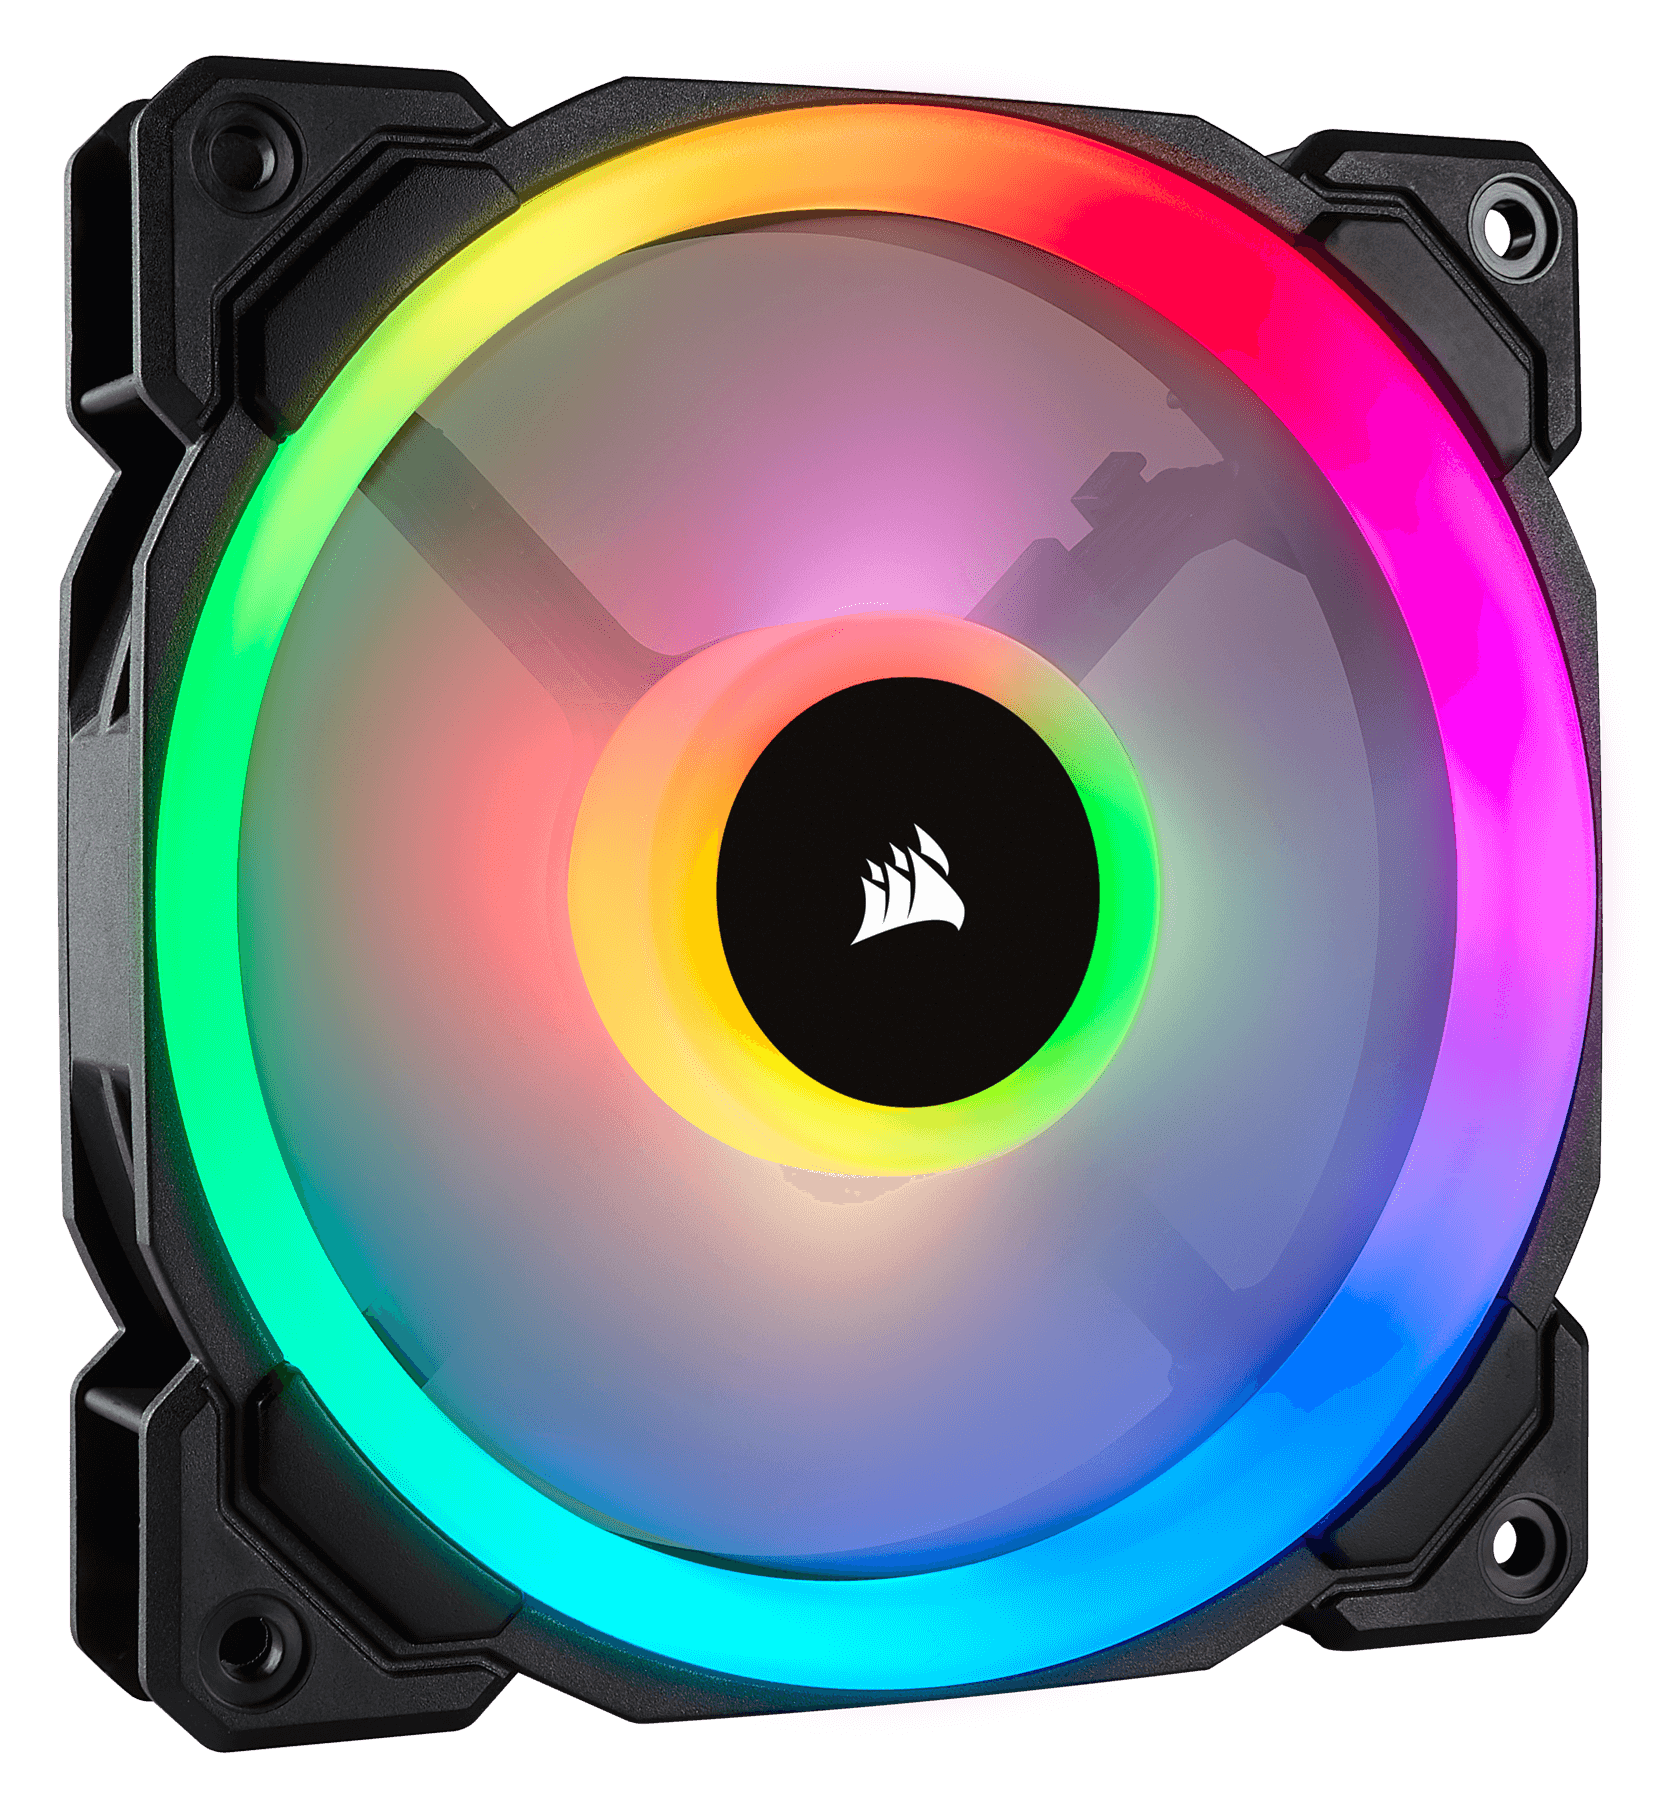 Fan Corsair LL120 RGB 120mm Dual Light Loop RGB LED PWM Single Pack (CO-9050071-WW) 2